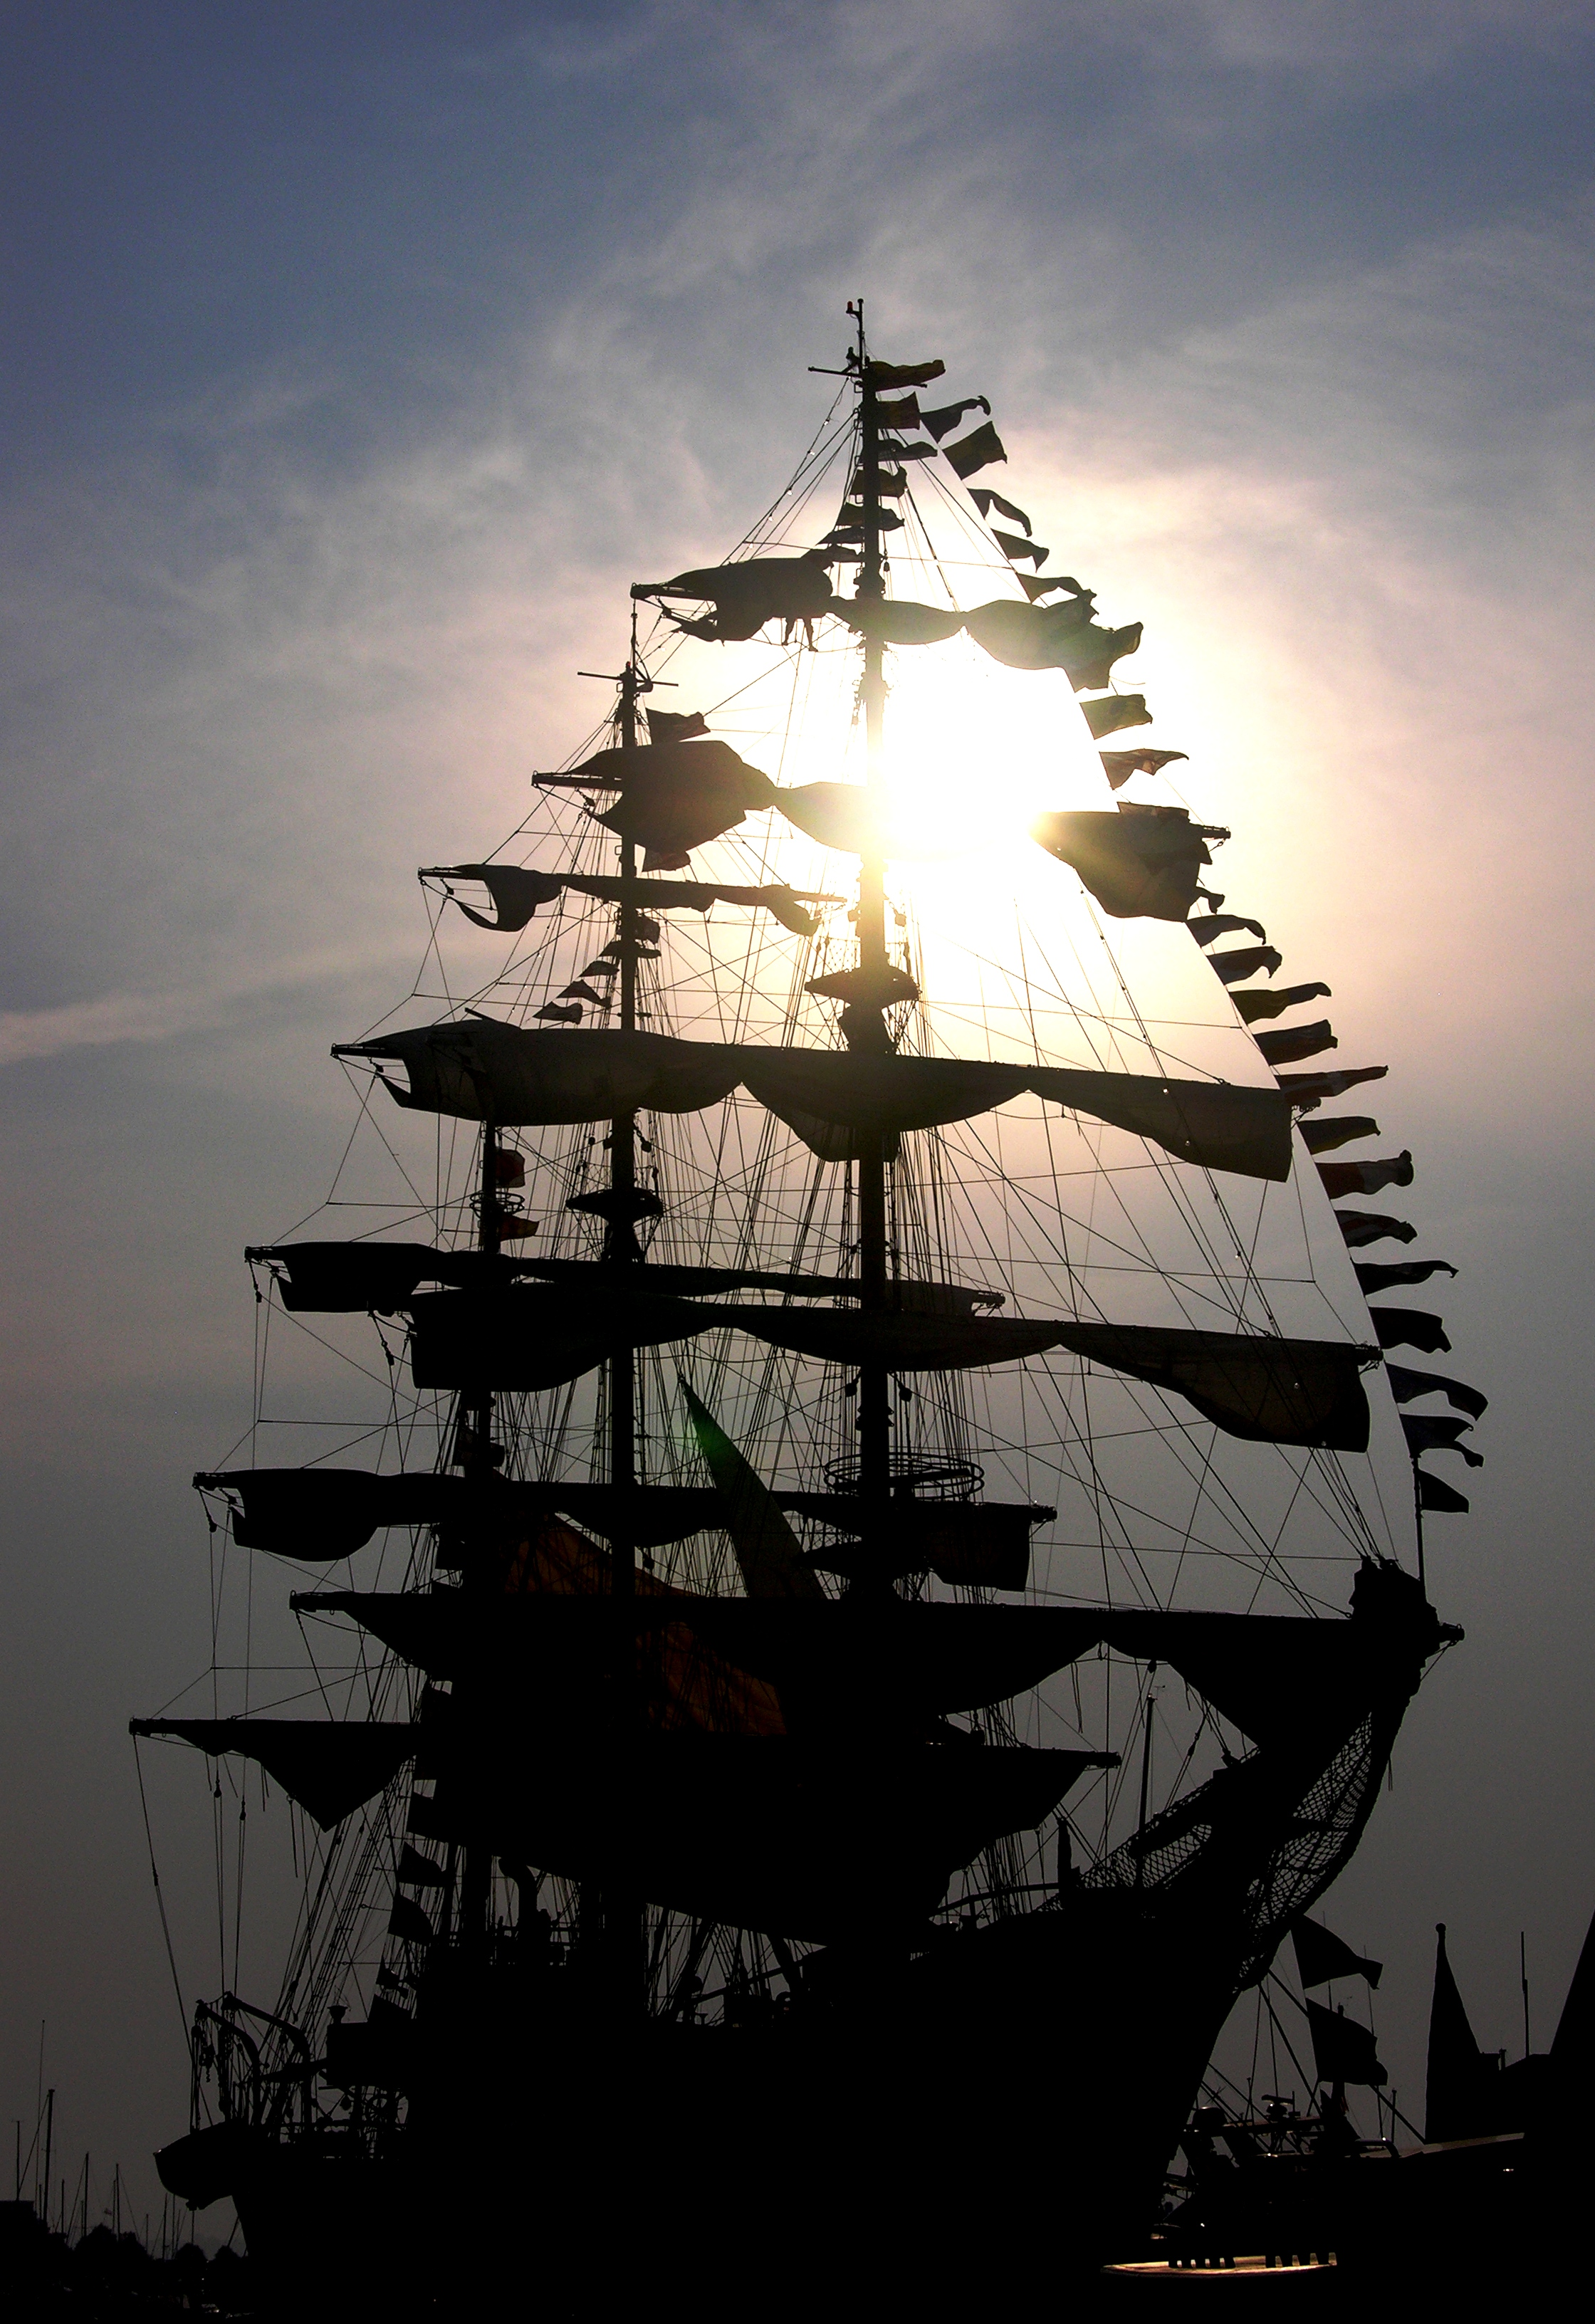 tall-ship-silhouette-1449207